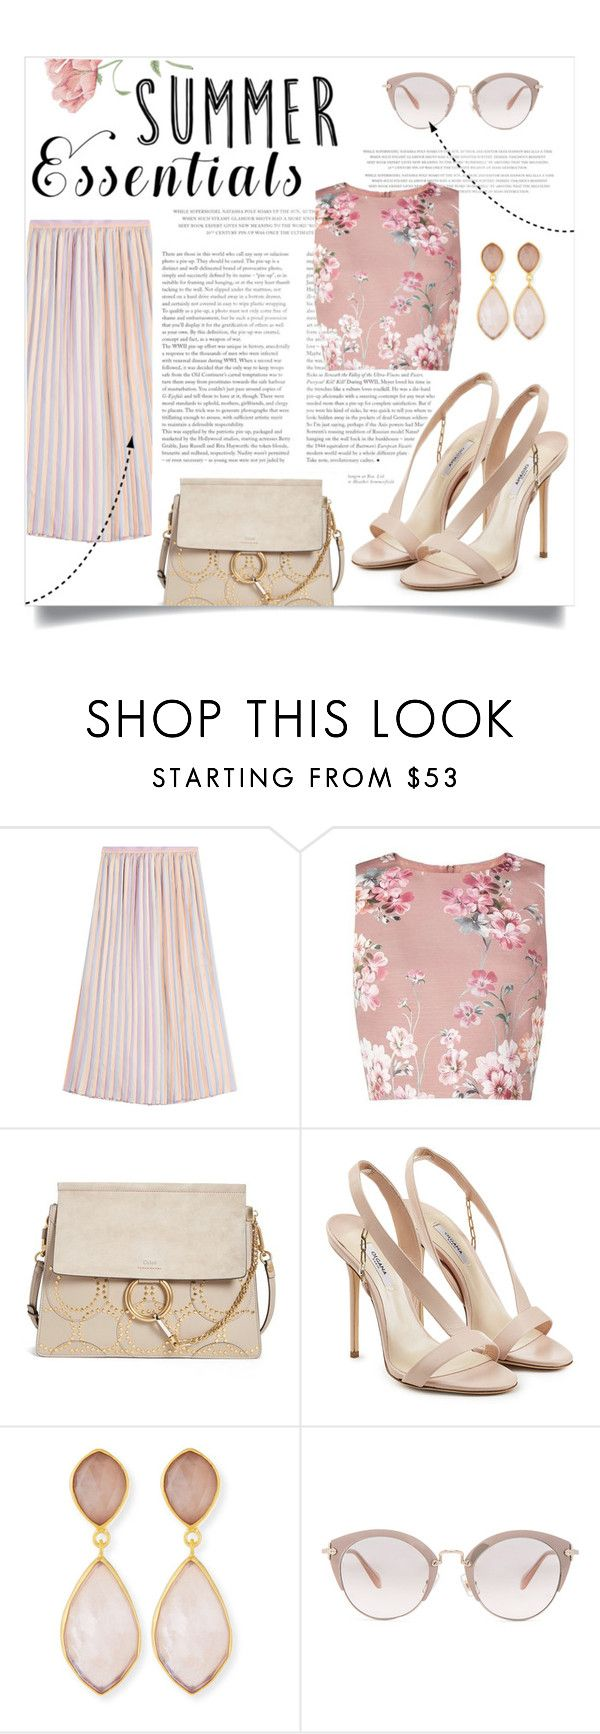 """SUMMER ESSENTIALS"" by lklmntna ❤ liked on Polyvore featuring Marco de Vincenzo, Miss Selfridge, Chloé, Olgana, Dina Mackney and Miu Miu"